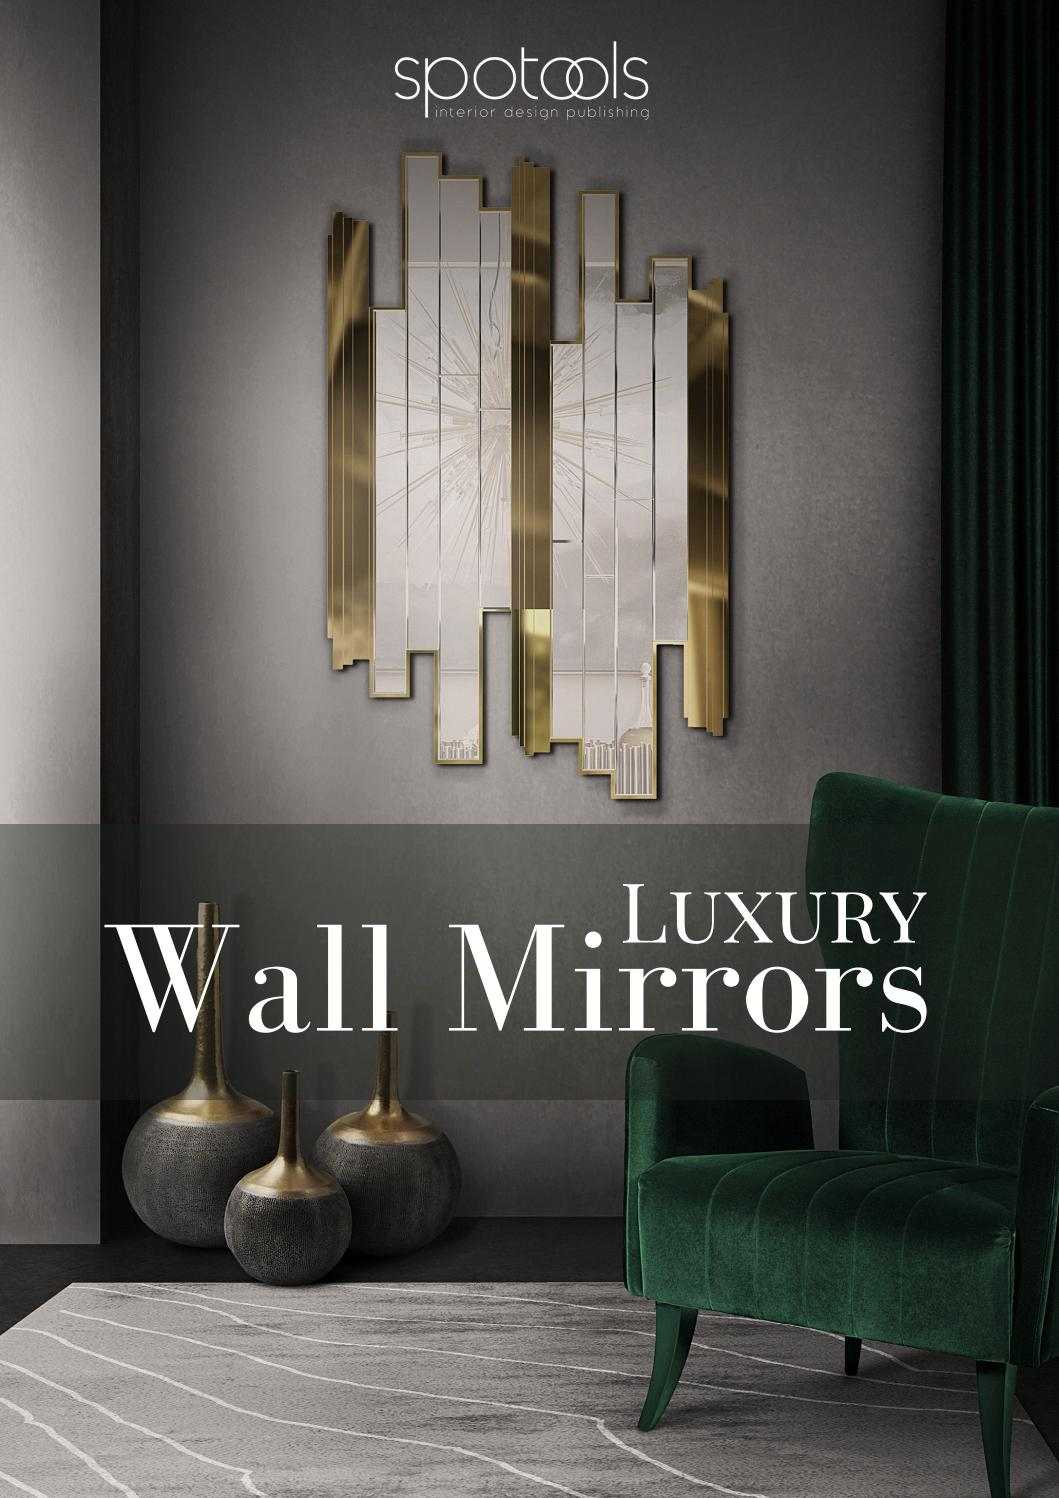 100 MUST SEE WALL MIRROR IDEAS by Spotools - issuu